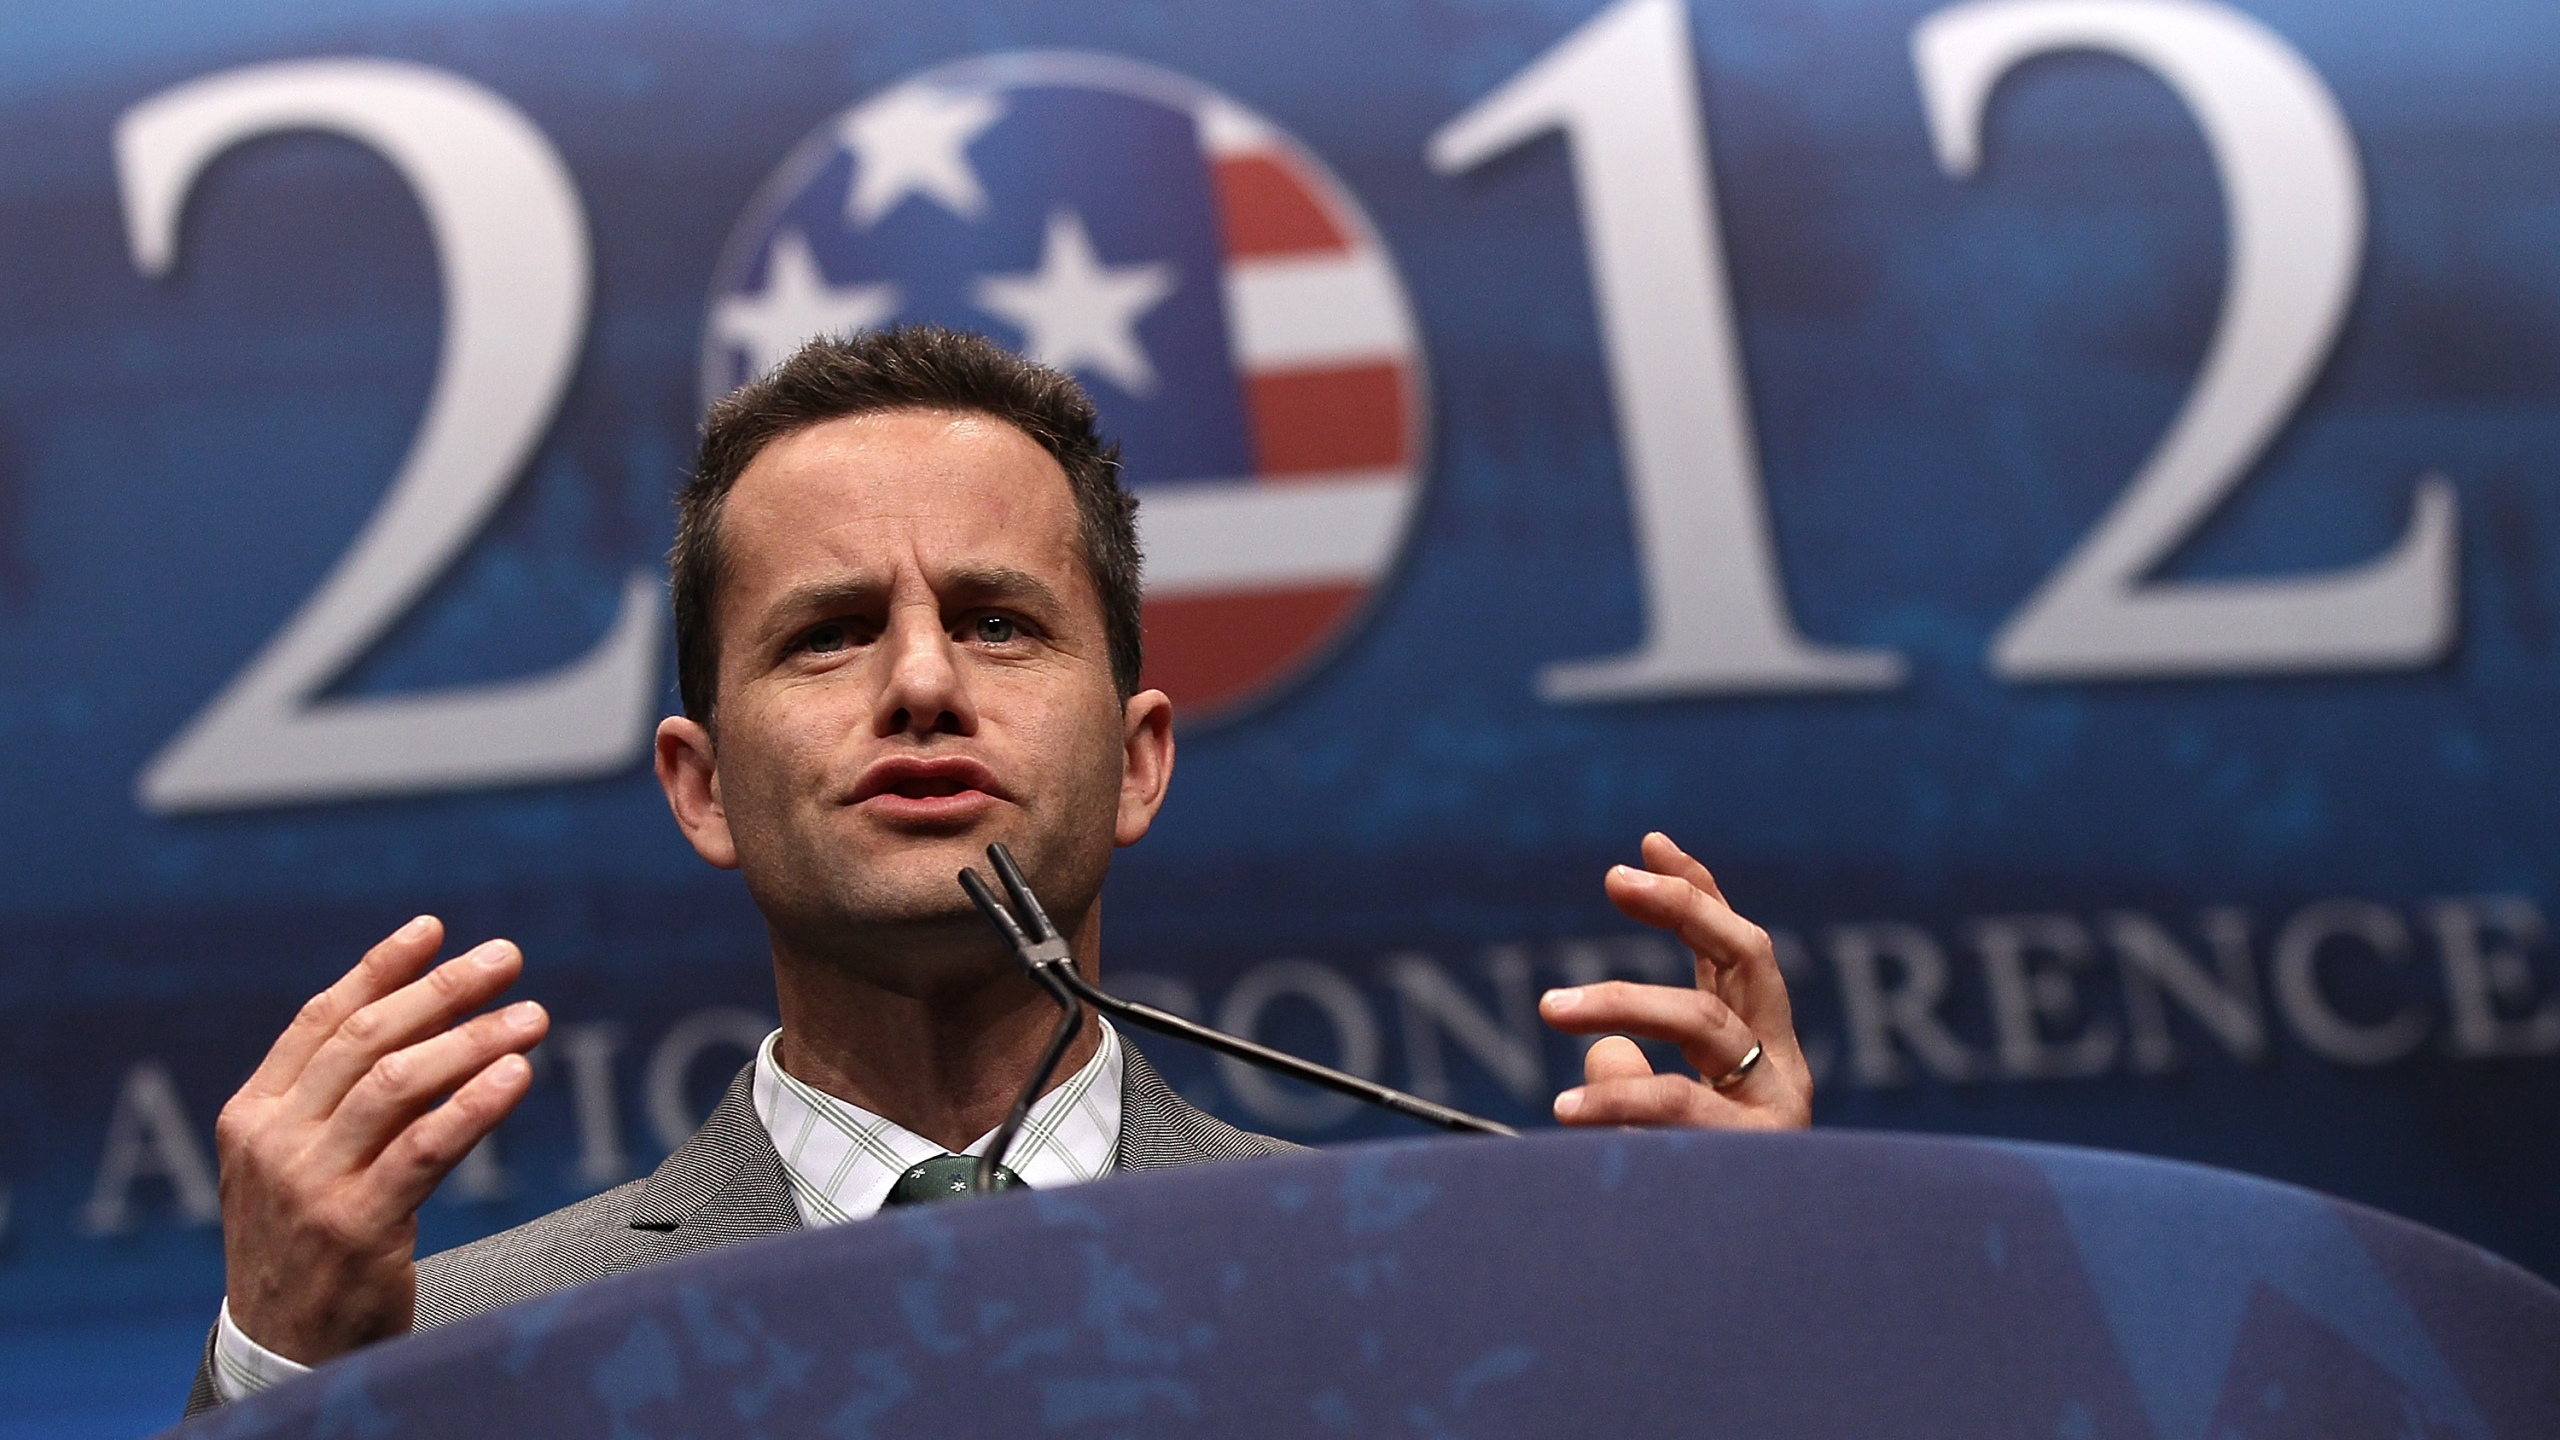 Actor Kirk Cameron speaks during the annual Conservative Political Action Conference on Feb. 9, 2012, n Washington, DC. (Win McNamee/Getty Images)